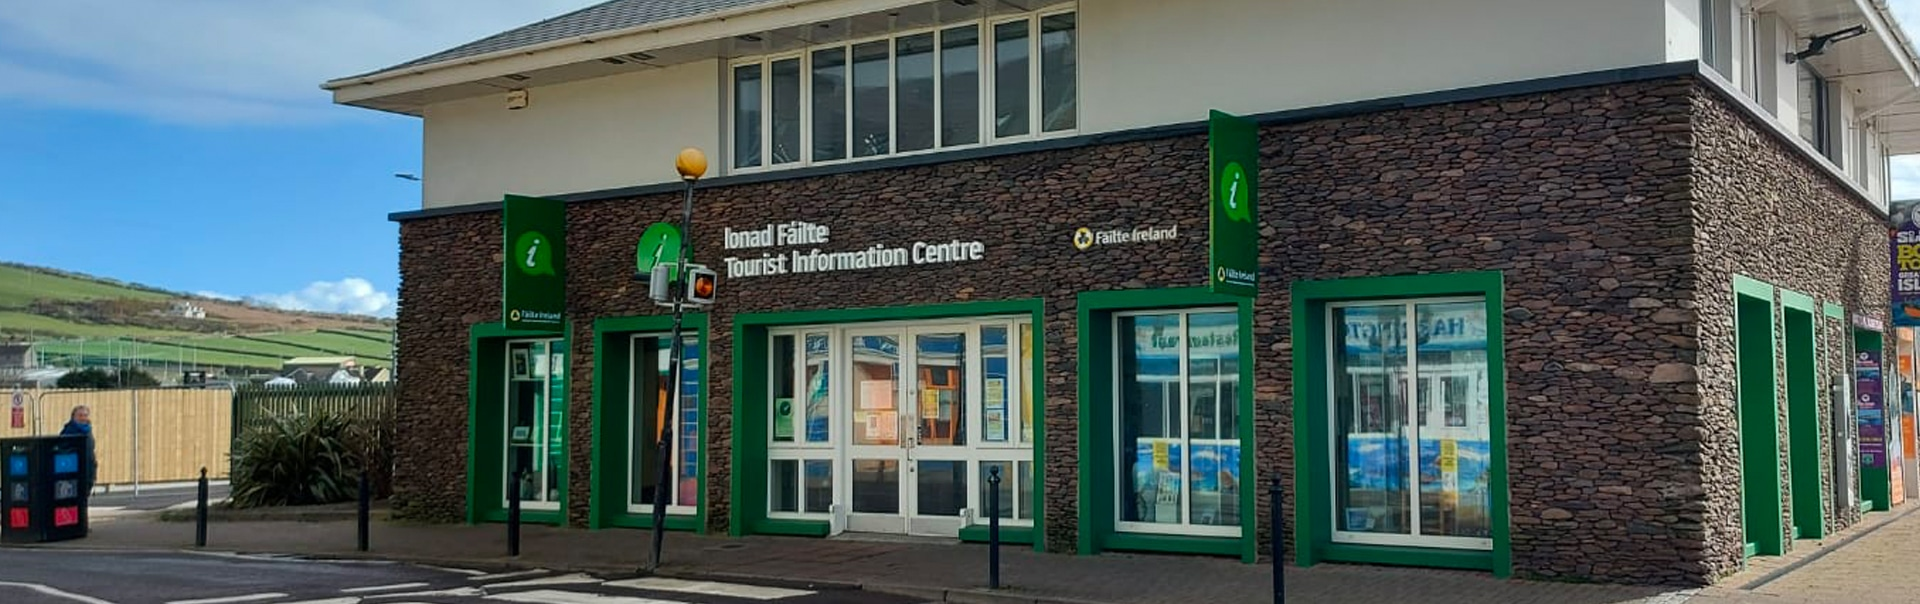 Lettering, lightbox and projecting signs lead visitors to the Failte Ireland office in Dingle, County Kerry.